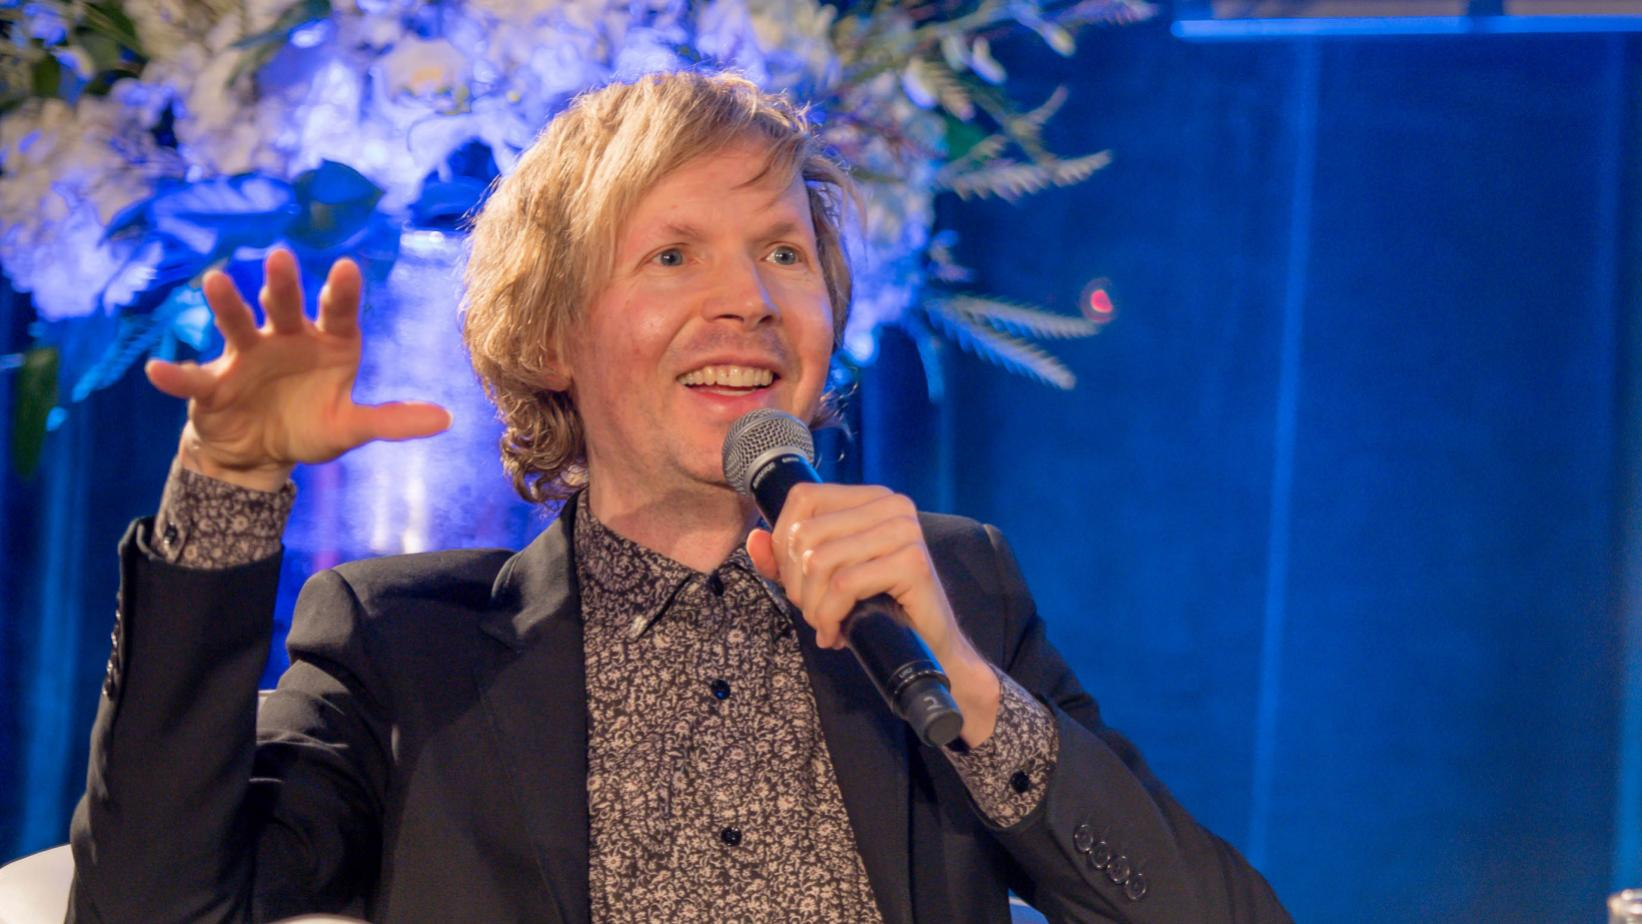 Beck photographed at Up Close & Personal With Beck